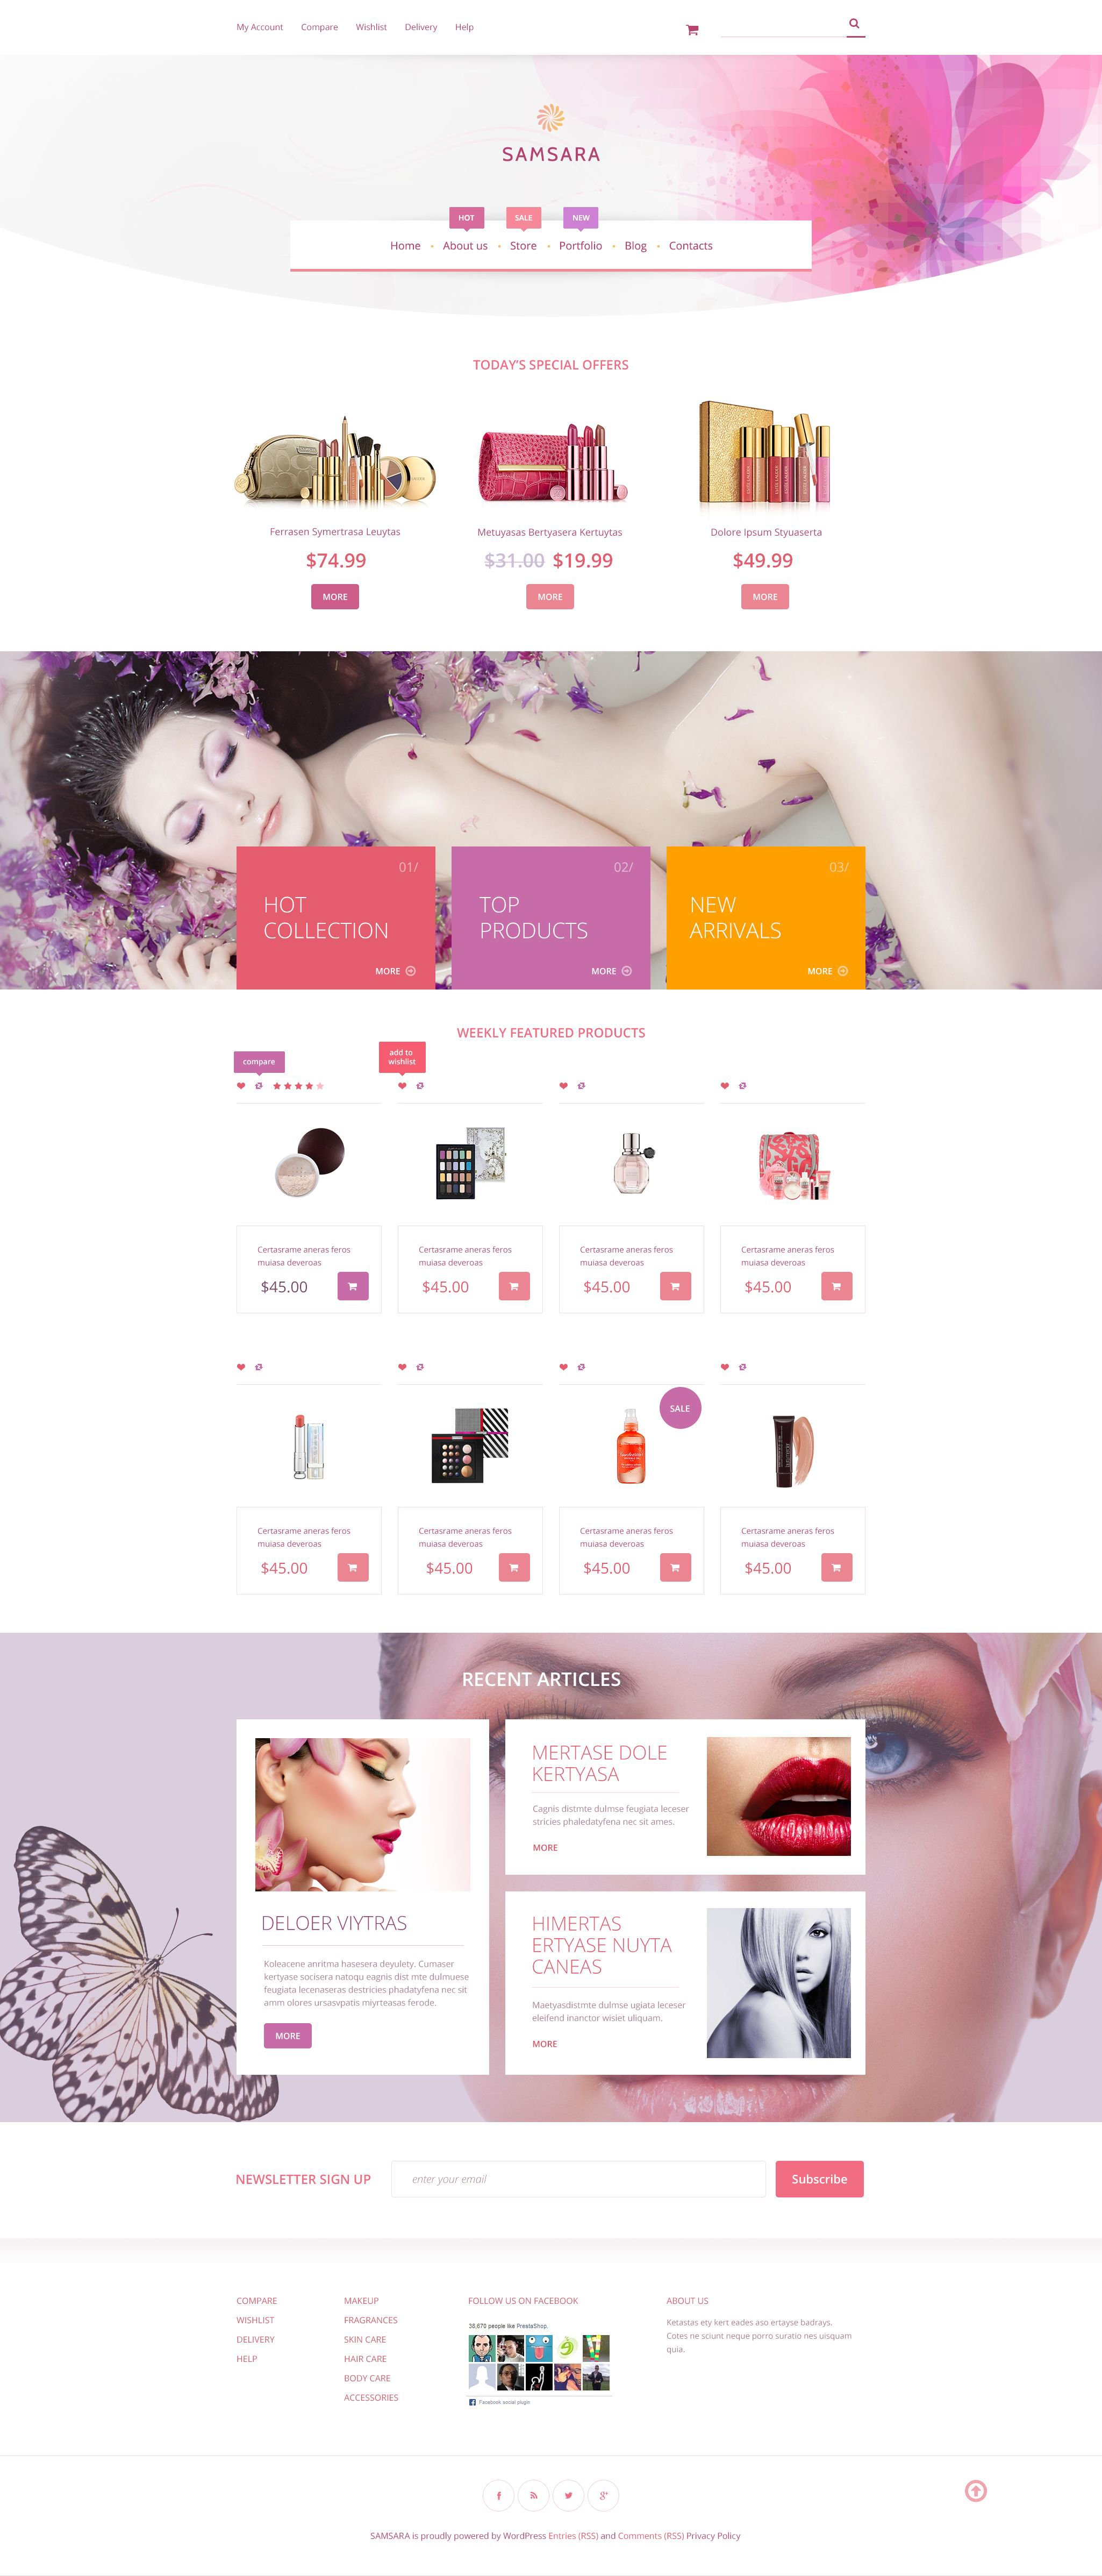 The Samsara Perfume Online Shop WooCommerce Design 53758, one of the best WooCommerce themes of its kind (wedding, most popular), also known as samsara perfume online shop WooCommerce template, cosmetic WooCommerce template, beauty WooCommerce template, fashion WooCommerce template, health care WooCommerce template, women solution WooCommerce template, service WooCommerce template, catalogue WooCommerce template, product WooCommerce template, gift WooCommerce template, skincare WooCommerce template, hair care WooCommerce template, style WooCommerce template, cream WooCommerce template, natural WooCommerce template, rejuvenation WooCommerce template, damping WooCommerce template, lifting WooCommerce template, peeling WooCommerce template, specials WooCommerce template, lipstick WooCommerce template, mascara WooCommerce template, nail WooCommerce template, polish WooCommerce template, shampoo WooCommerce template, body WooCommerce template, milk WooCommerce template, lotion WooCommerce template, hand WooCommerce template, client and related with samsara perfume online shop, cosmetic, beauty, fashion, health care, women solution, service, catalogue, product, gift, skincare, hair care, style, cream, natural, rejuvenation, damping, lifting, peeling, specials, lipstick, mascara, nail, polish, shampoo, body, milk, lotion, hand, client, etc.